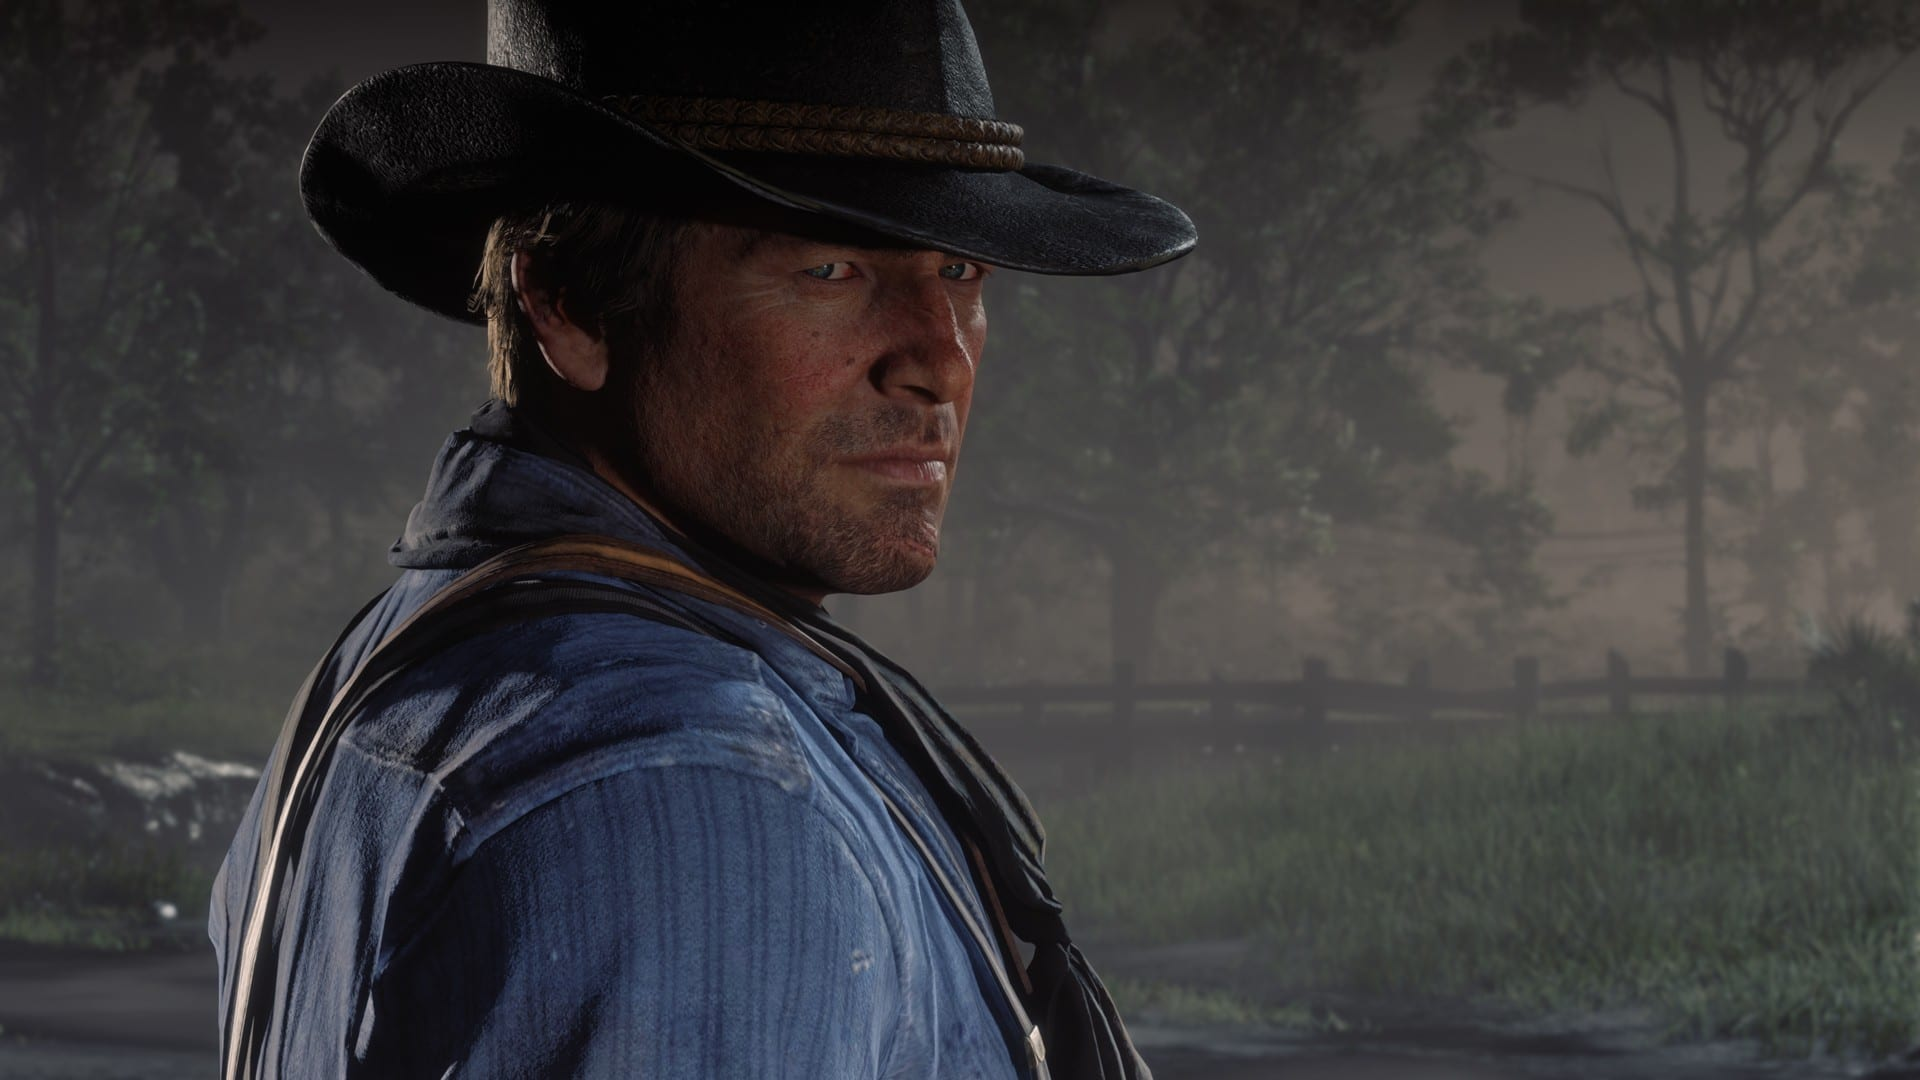 red dead redemption 2 pc pre-purchase, screenshots, rockstar